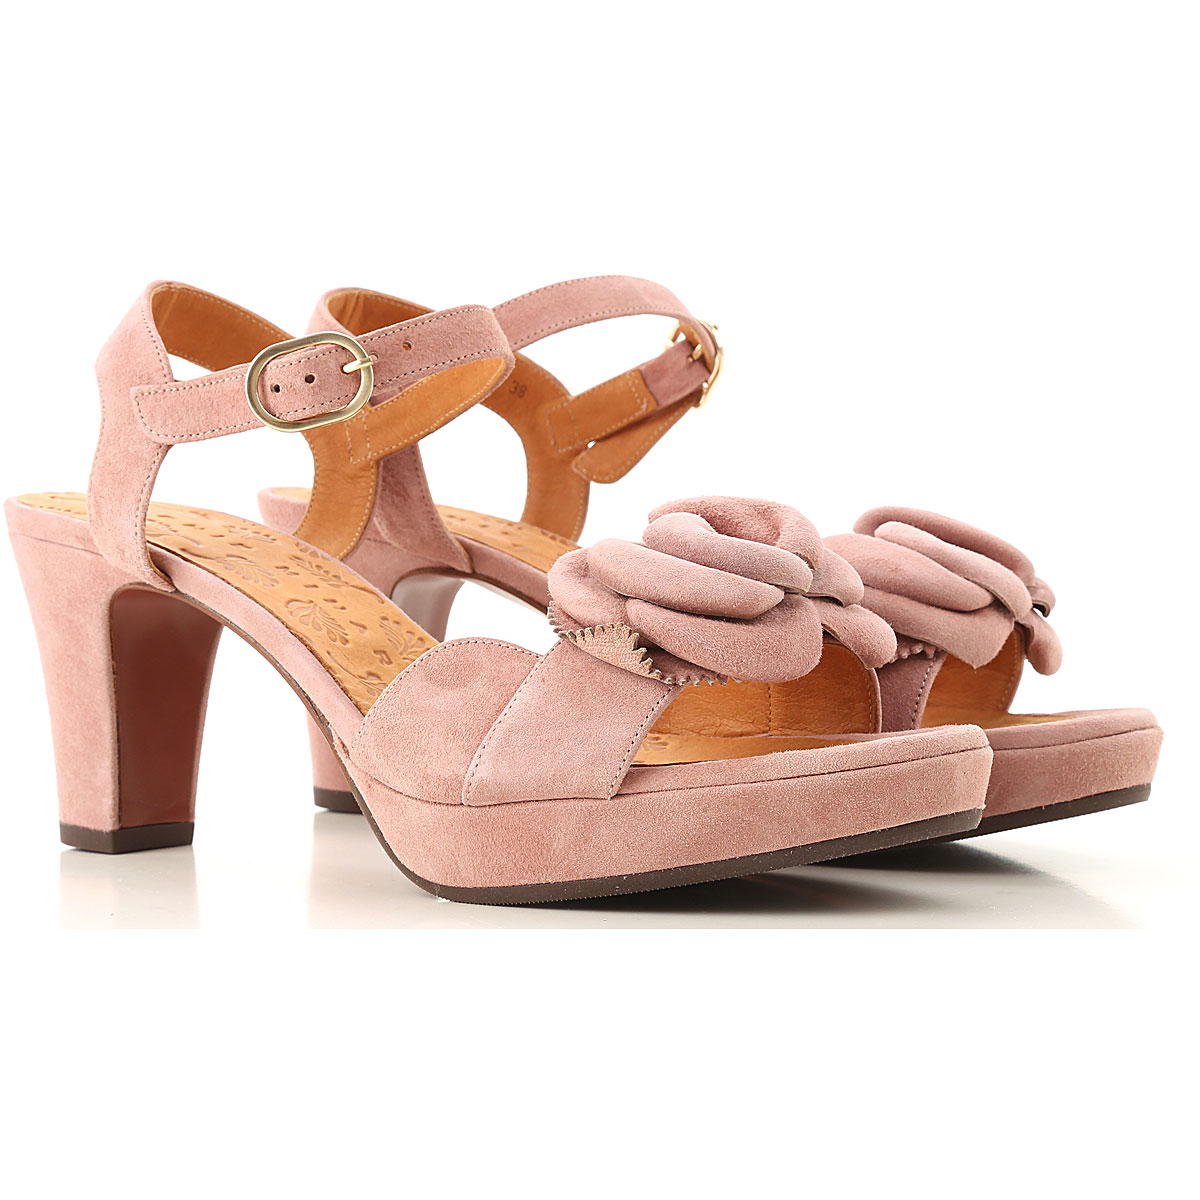 Chie Mihara Sandals for Women On Sale in Outlet, Vintage Pink, Suede leather, 2019, 6 7